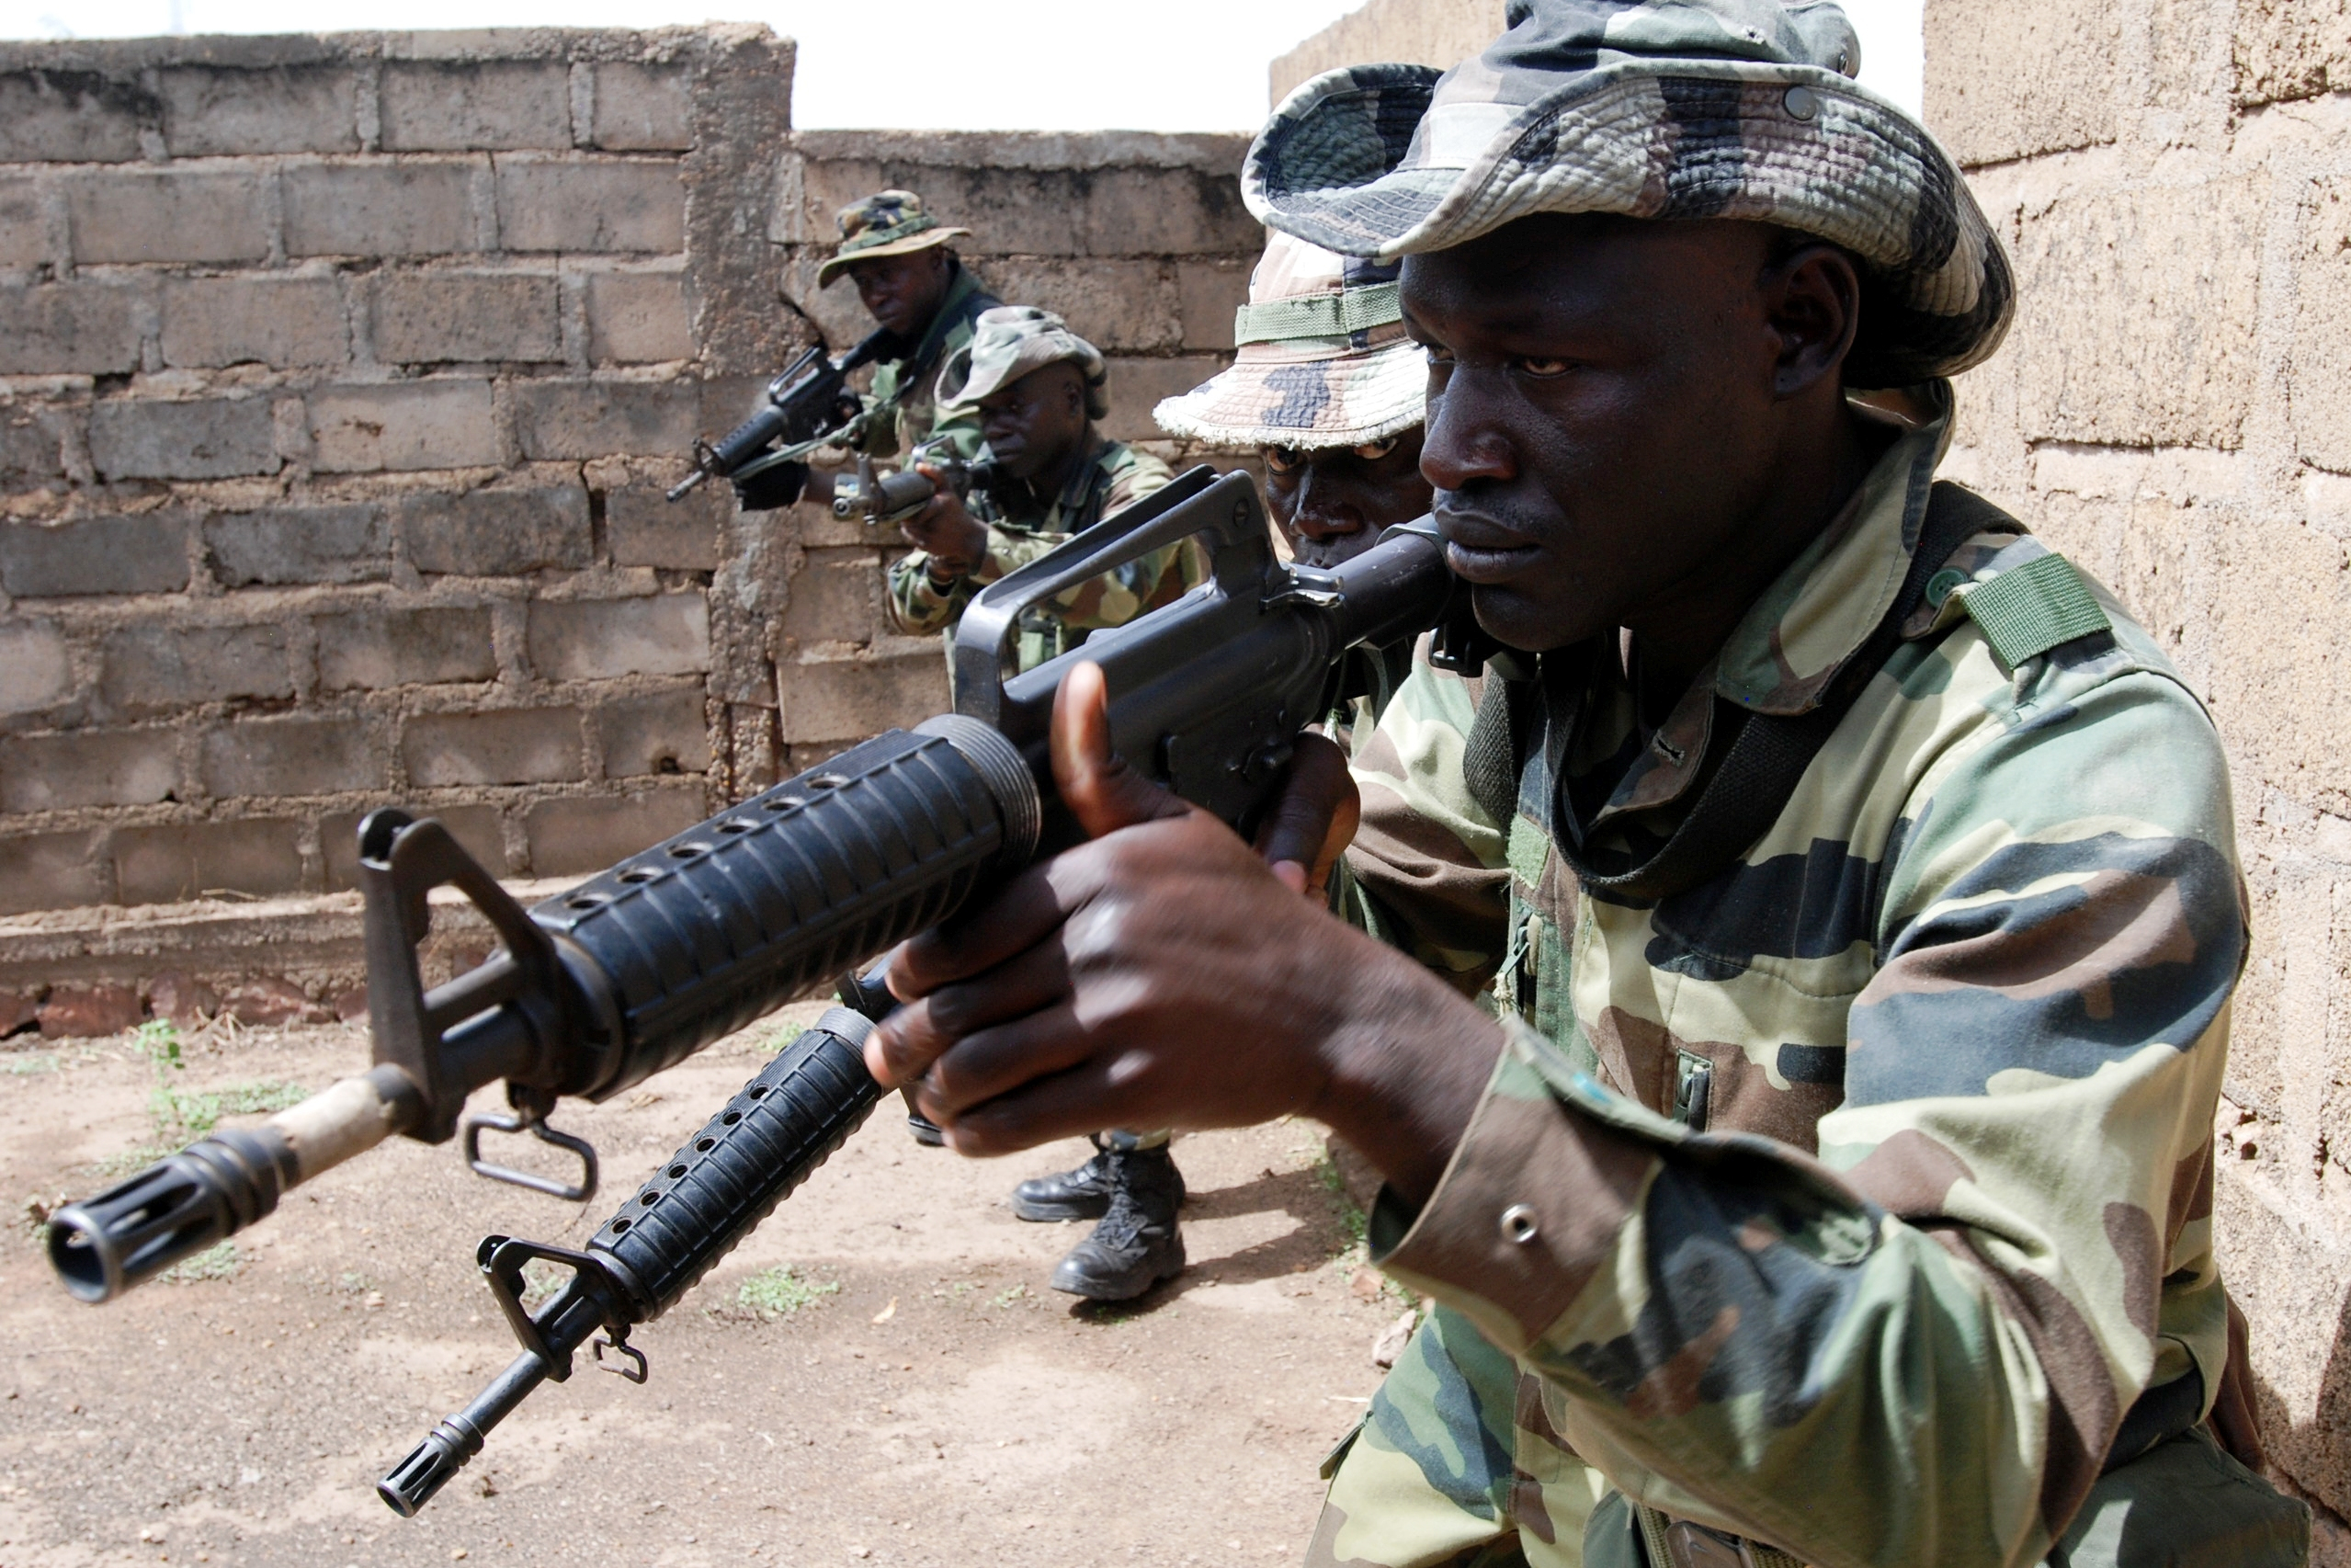 The Situation In Mali